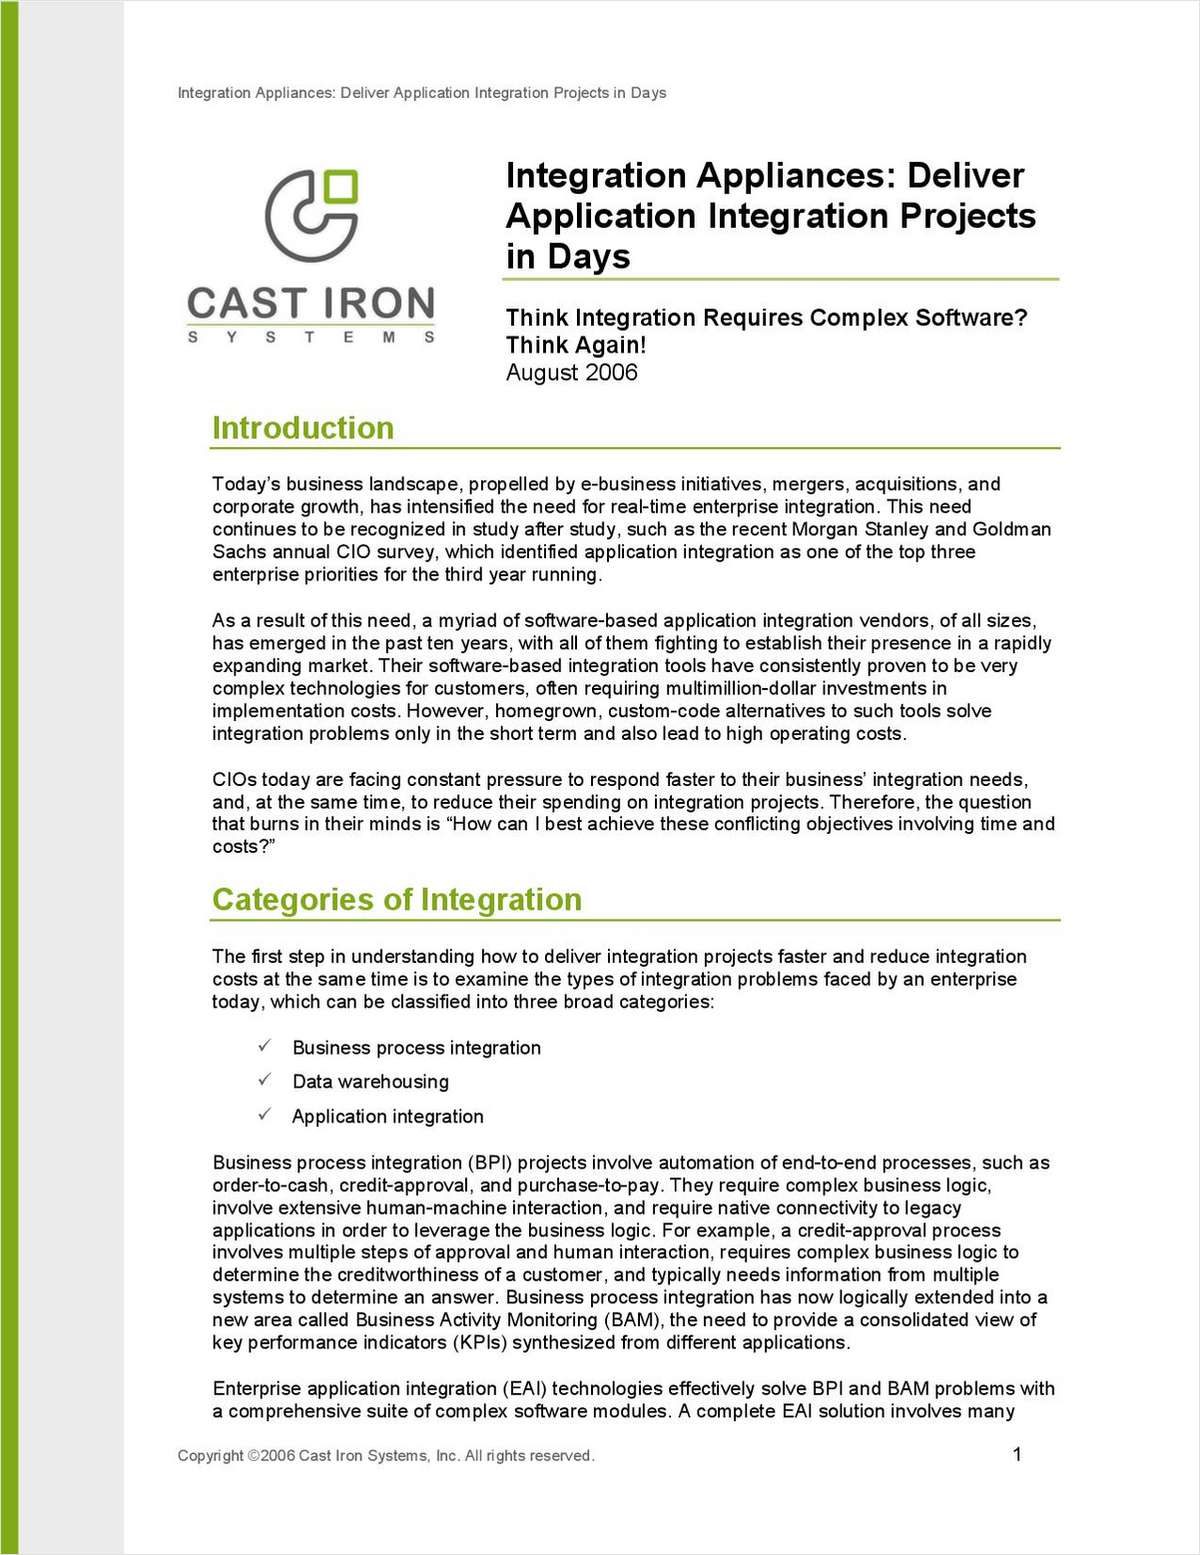 Integration Appliances: Deliver Application Integration Projects in Days